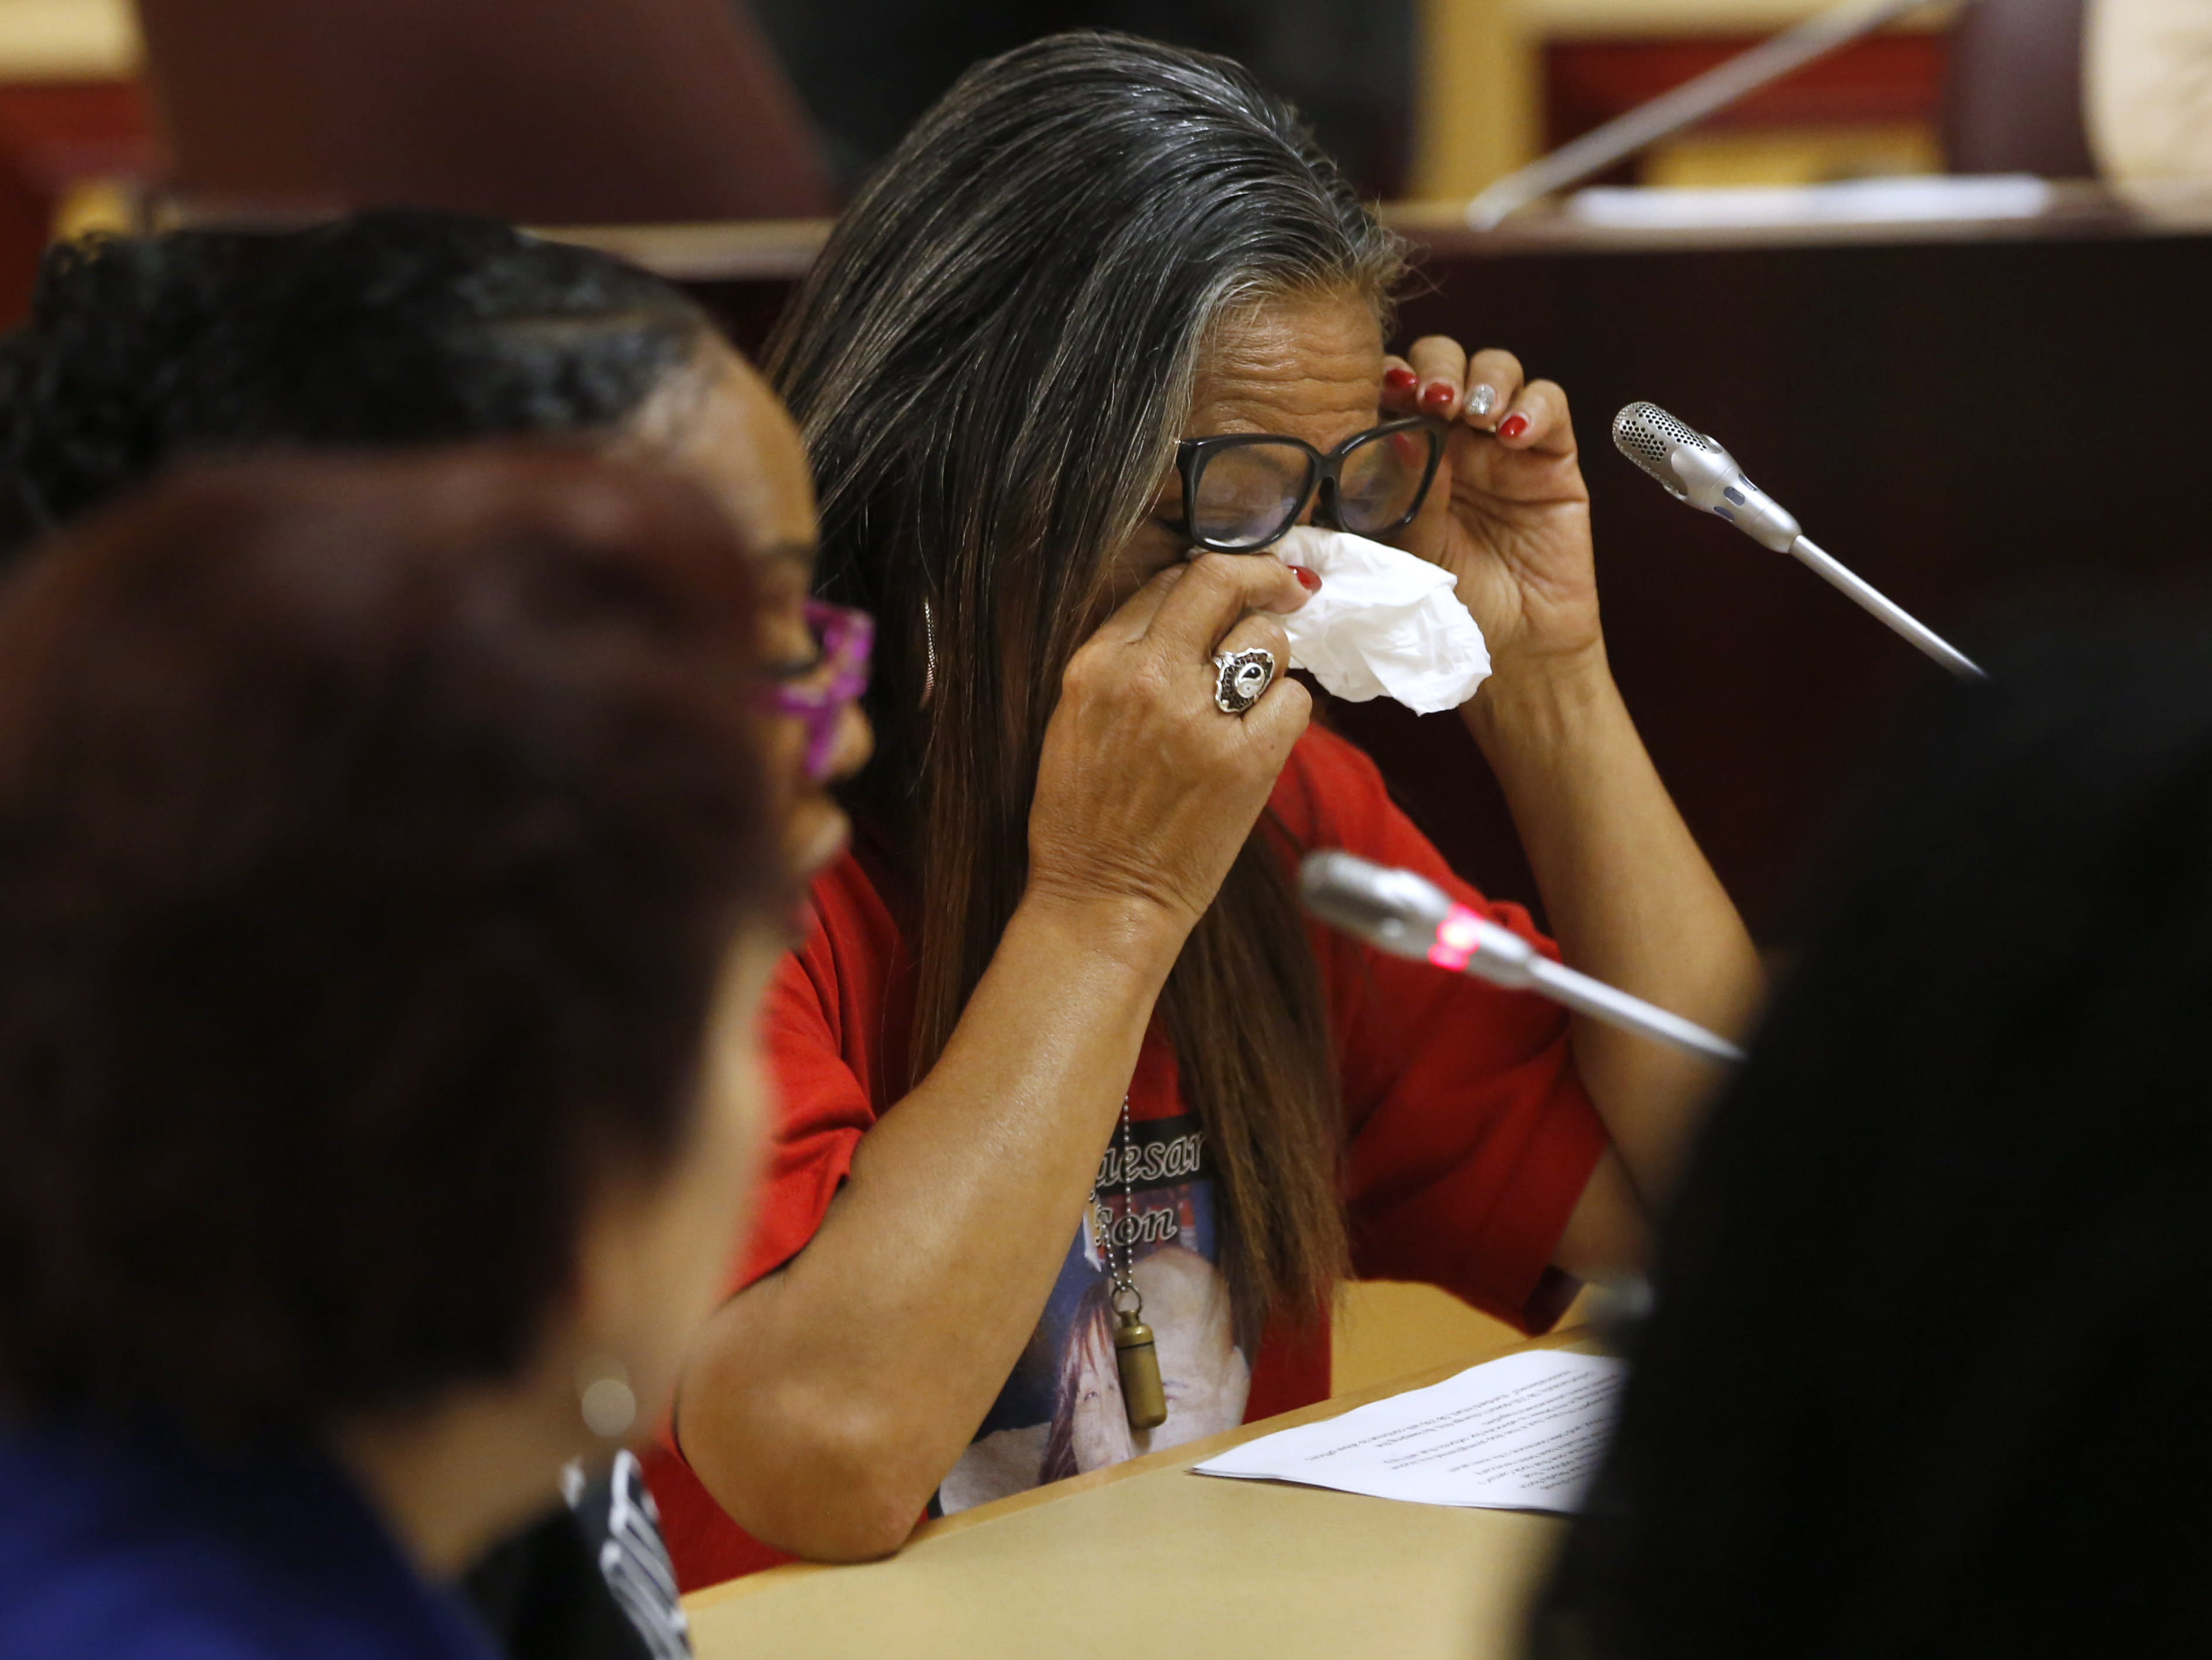 Theresa Smith, right, the mother of Caesar Cruz, who was killed in a confrontation with police, wipes her eyes after testifying against a police-backed law enforcement training bill by state Sen. Anna Caballero, D-Salinas, during a hearing at the Capitol Tuesday, April 23, 2019, in Sacramento, Calif. Lawmakers worked to find common ground between law enforcement organizations, which support Caballero's bill and reformers supporting a competing measure, by Democratic Assemblywoman Shirley Weber, that would adopt the first-in-the-nation standards designed to limit fatal shootings by police. (AP Photo/Rich Pedroncelli)